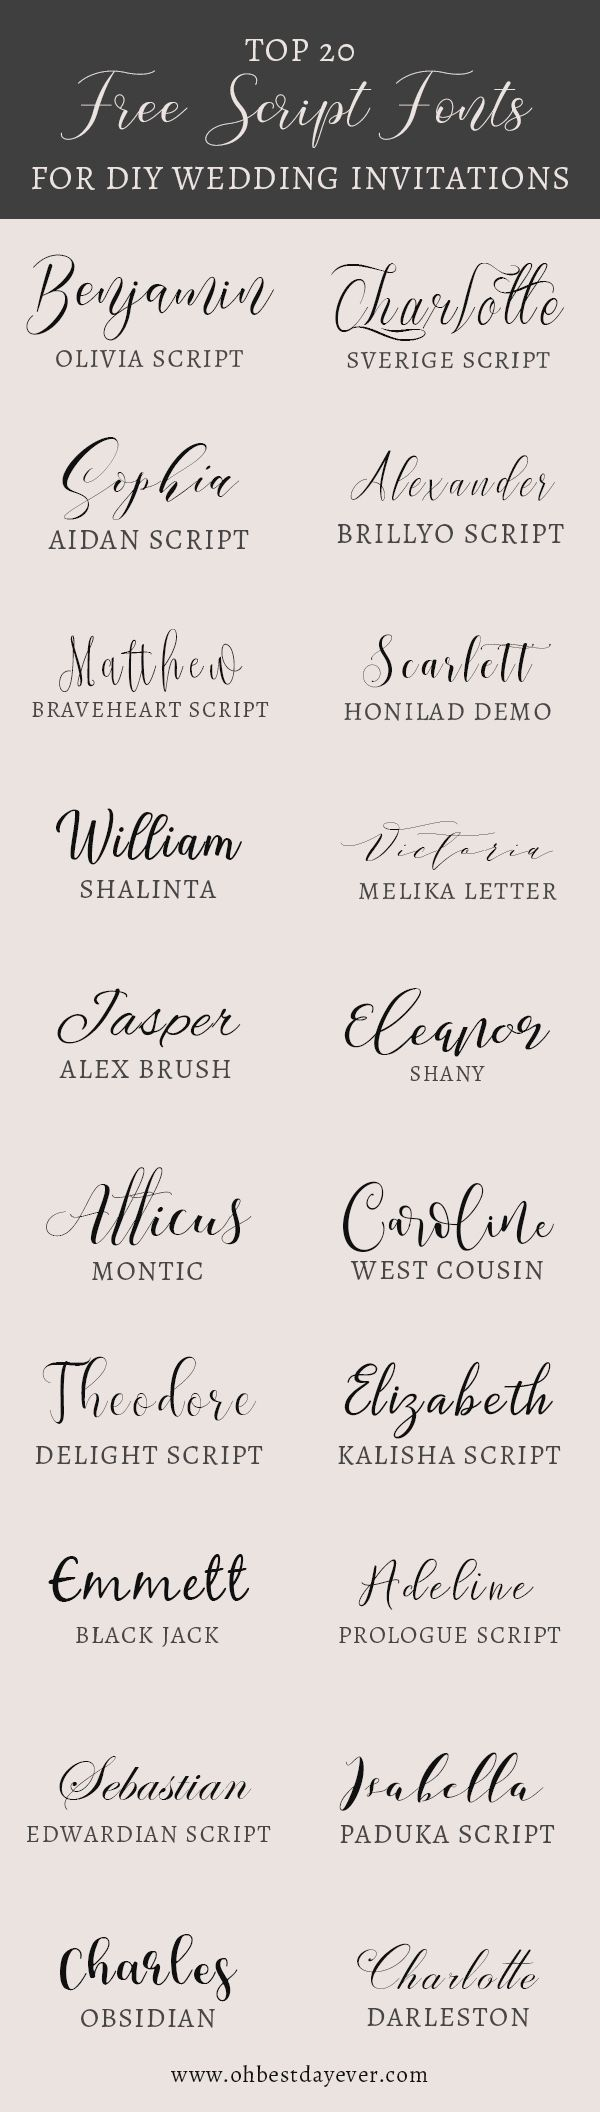 20 Fancy Free Script Fonts for DIY Wedding Invitations